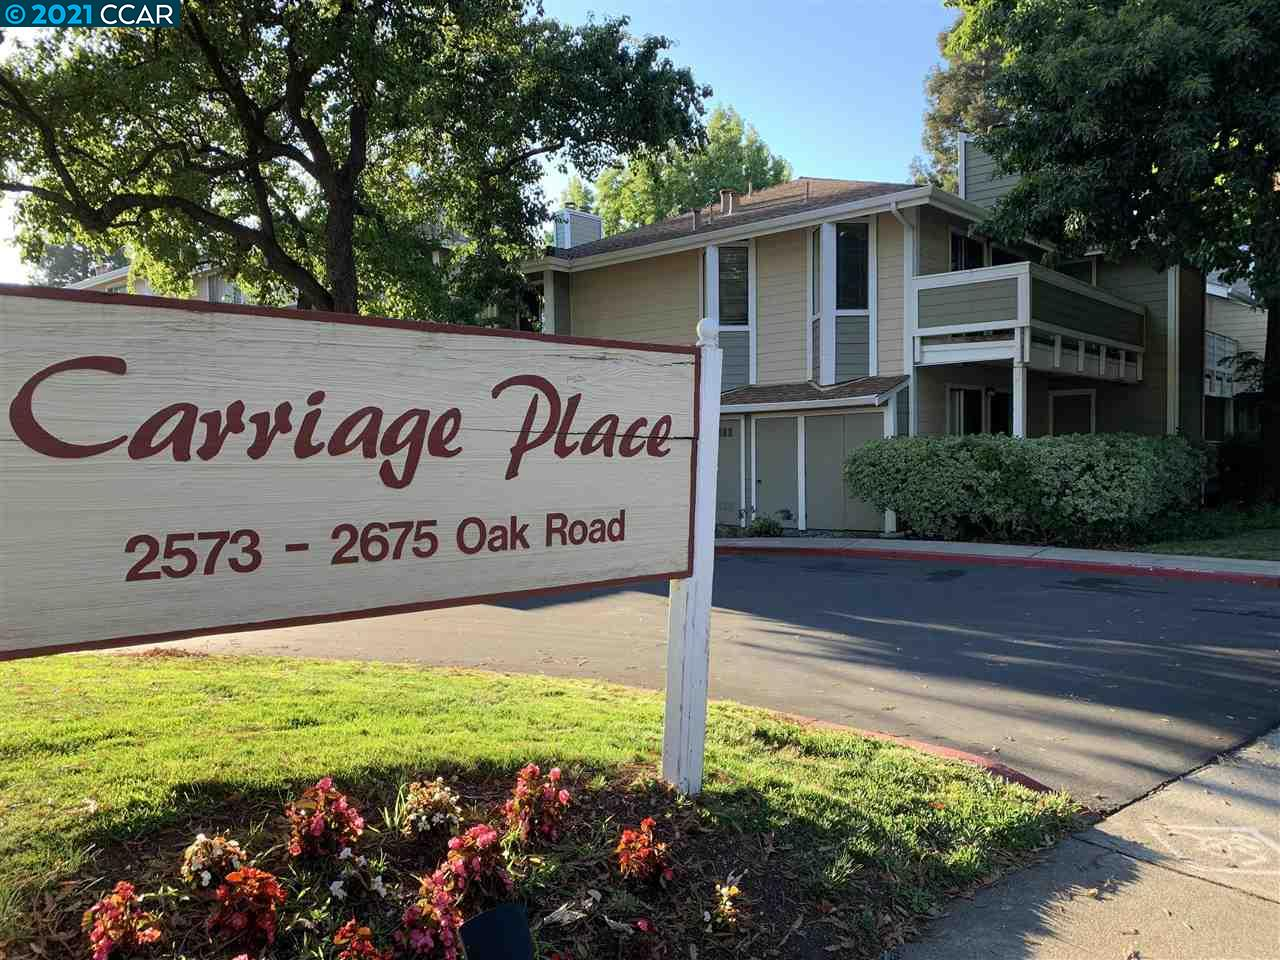 Desirable and lovely end unit in Carriage Place complex located on 2nd floor with storage space. Half a mile away to Pleasant Hill BART and Renaissance Walnut Creek. Across Walden park and walking distance to other parks & shops. Trail is close by and ideal for walks and bike rides. Refrigerator, stackable washer and dryer included with sale. New microwave installed. Water heater replaced 1/12/2018, Furnace replaced 1/19/2017, electric stove replaced 2/20/2015 and stackable washer and dryer replaced 7/3/2014, according to seller. HOA recently approved hardwood floors can now be installed.